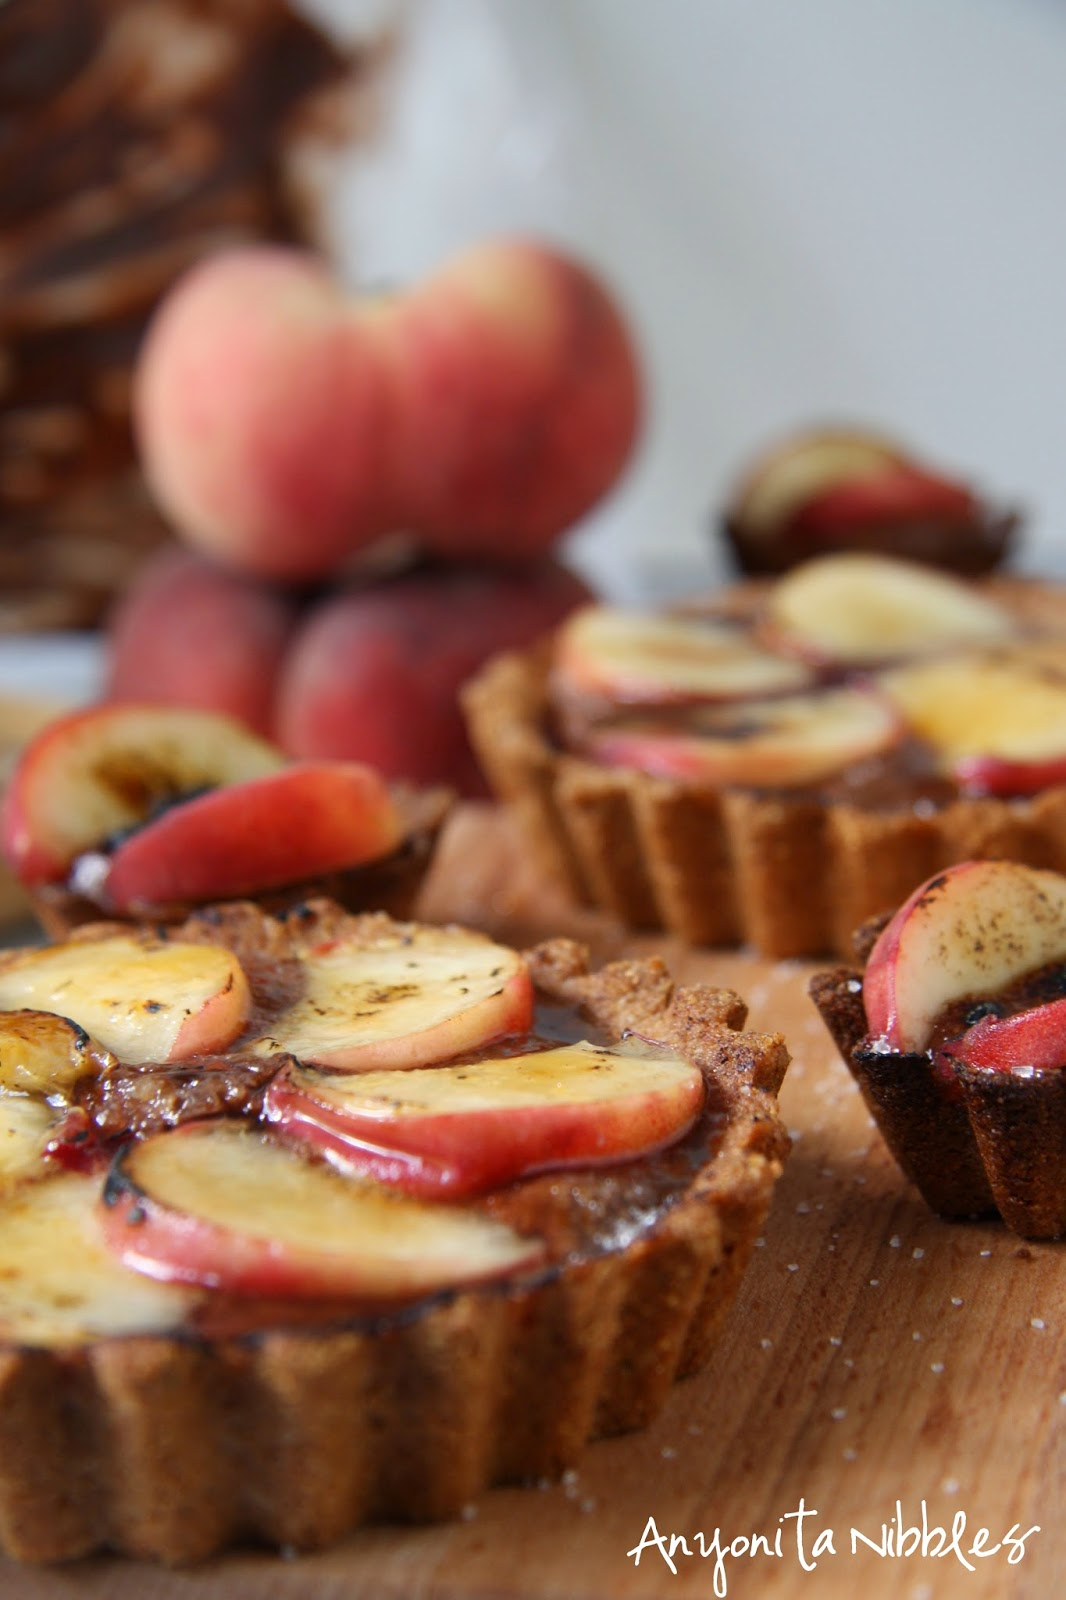 Sumptuous and decadent peach tarts by Anyonita Nibbles